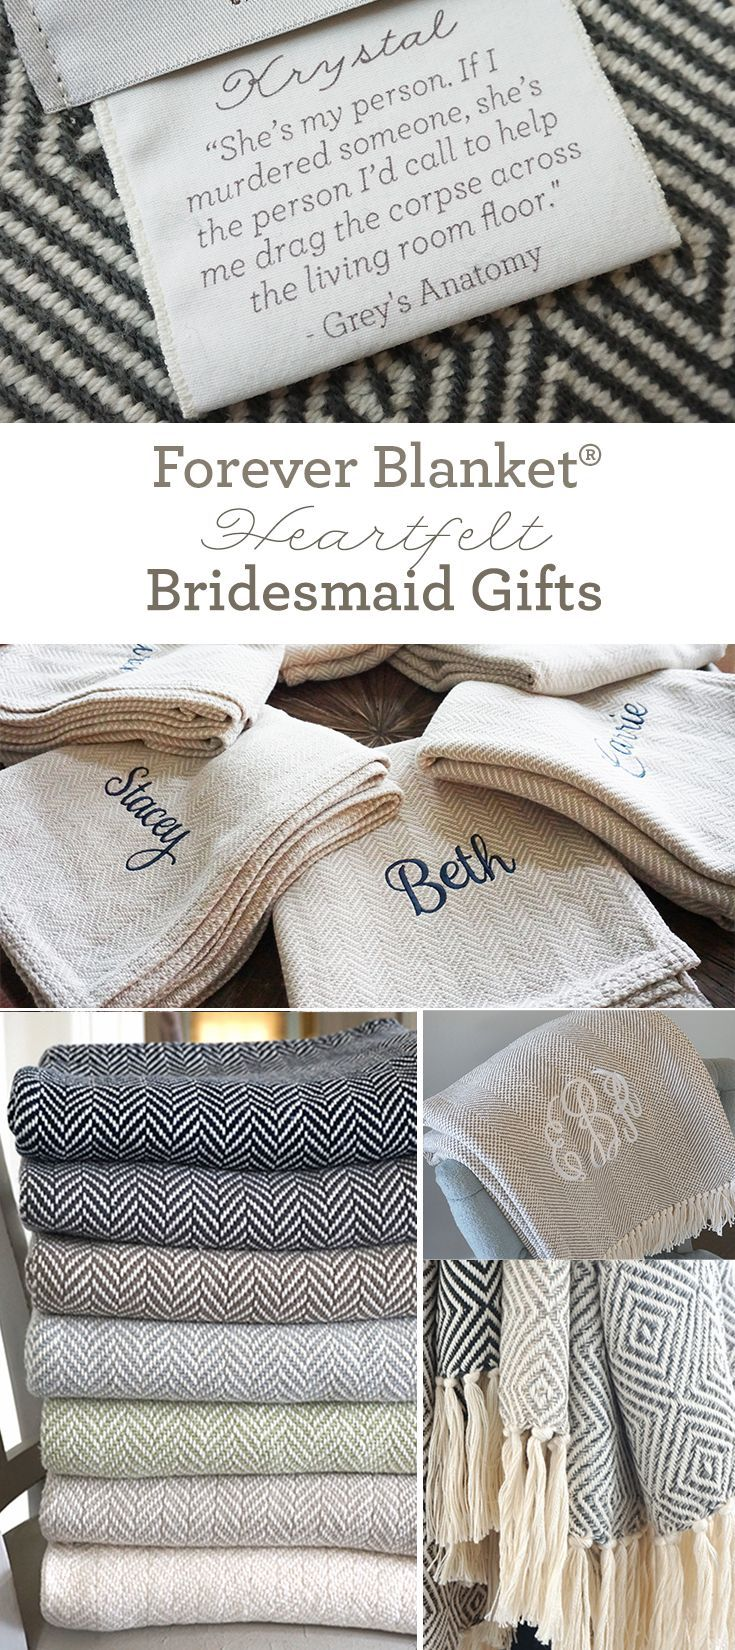 Amazingly sentimental bridesmaid gifts from Swell Forever. Forever Blanket throws. Unique message tags. Mother of the bride. Mother of the groom. Wedding party. American Made. Embroidery. Monograms. Charitable donations included.